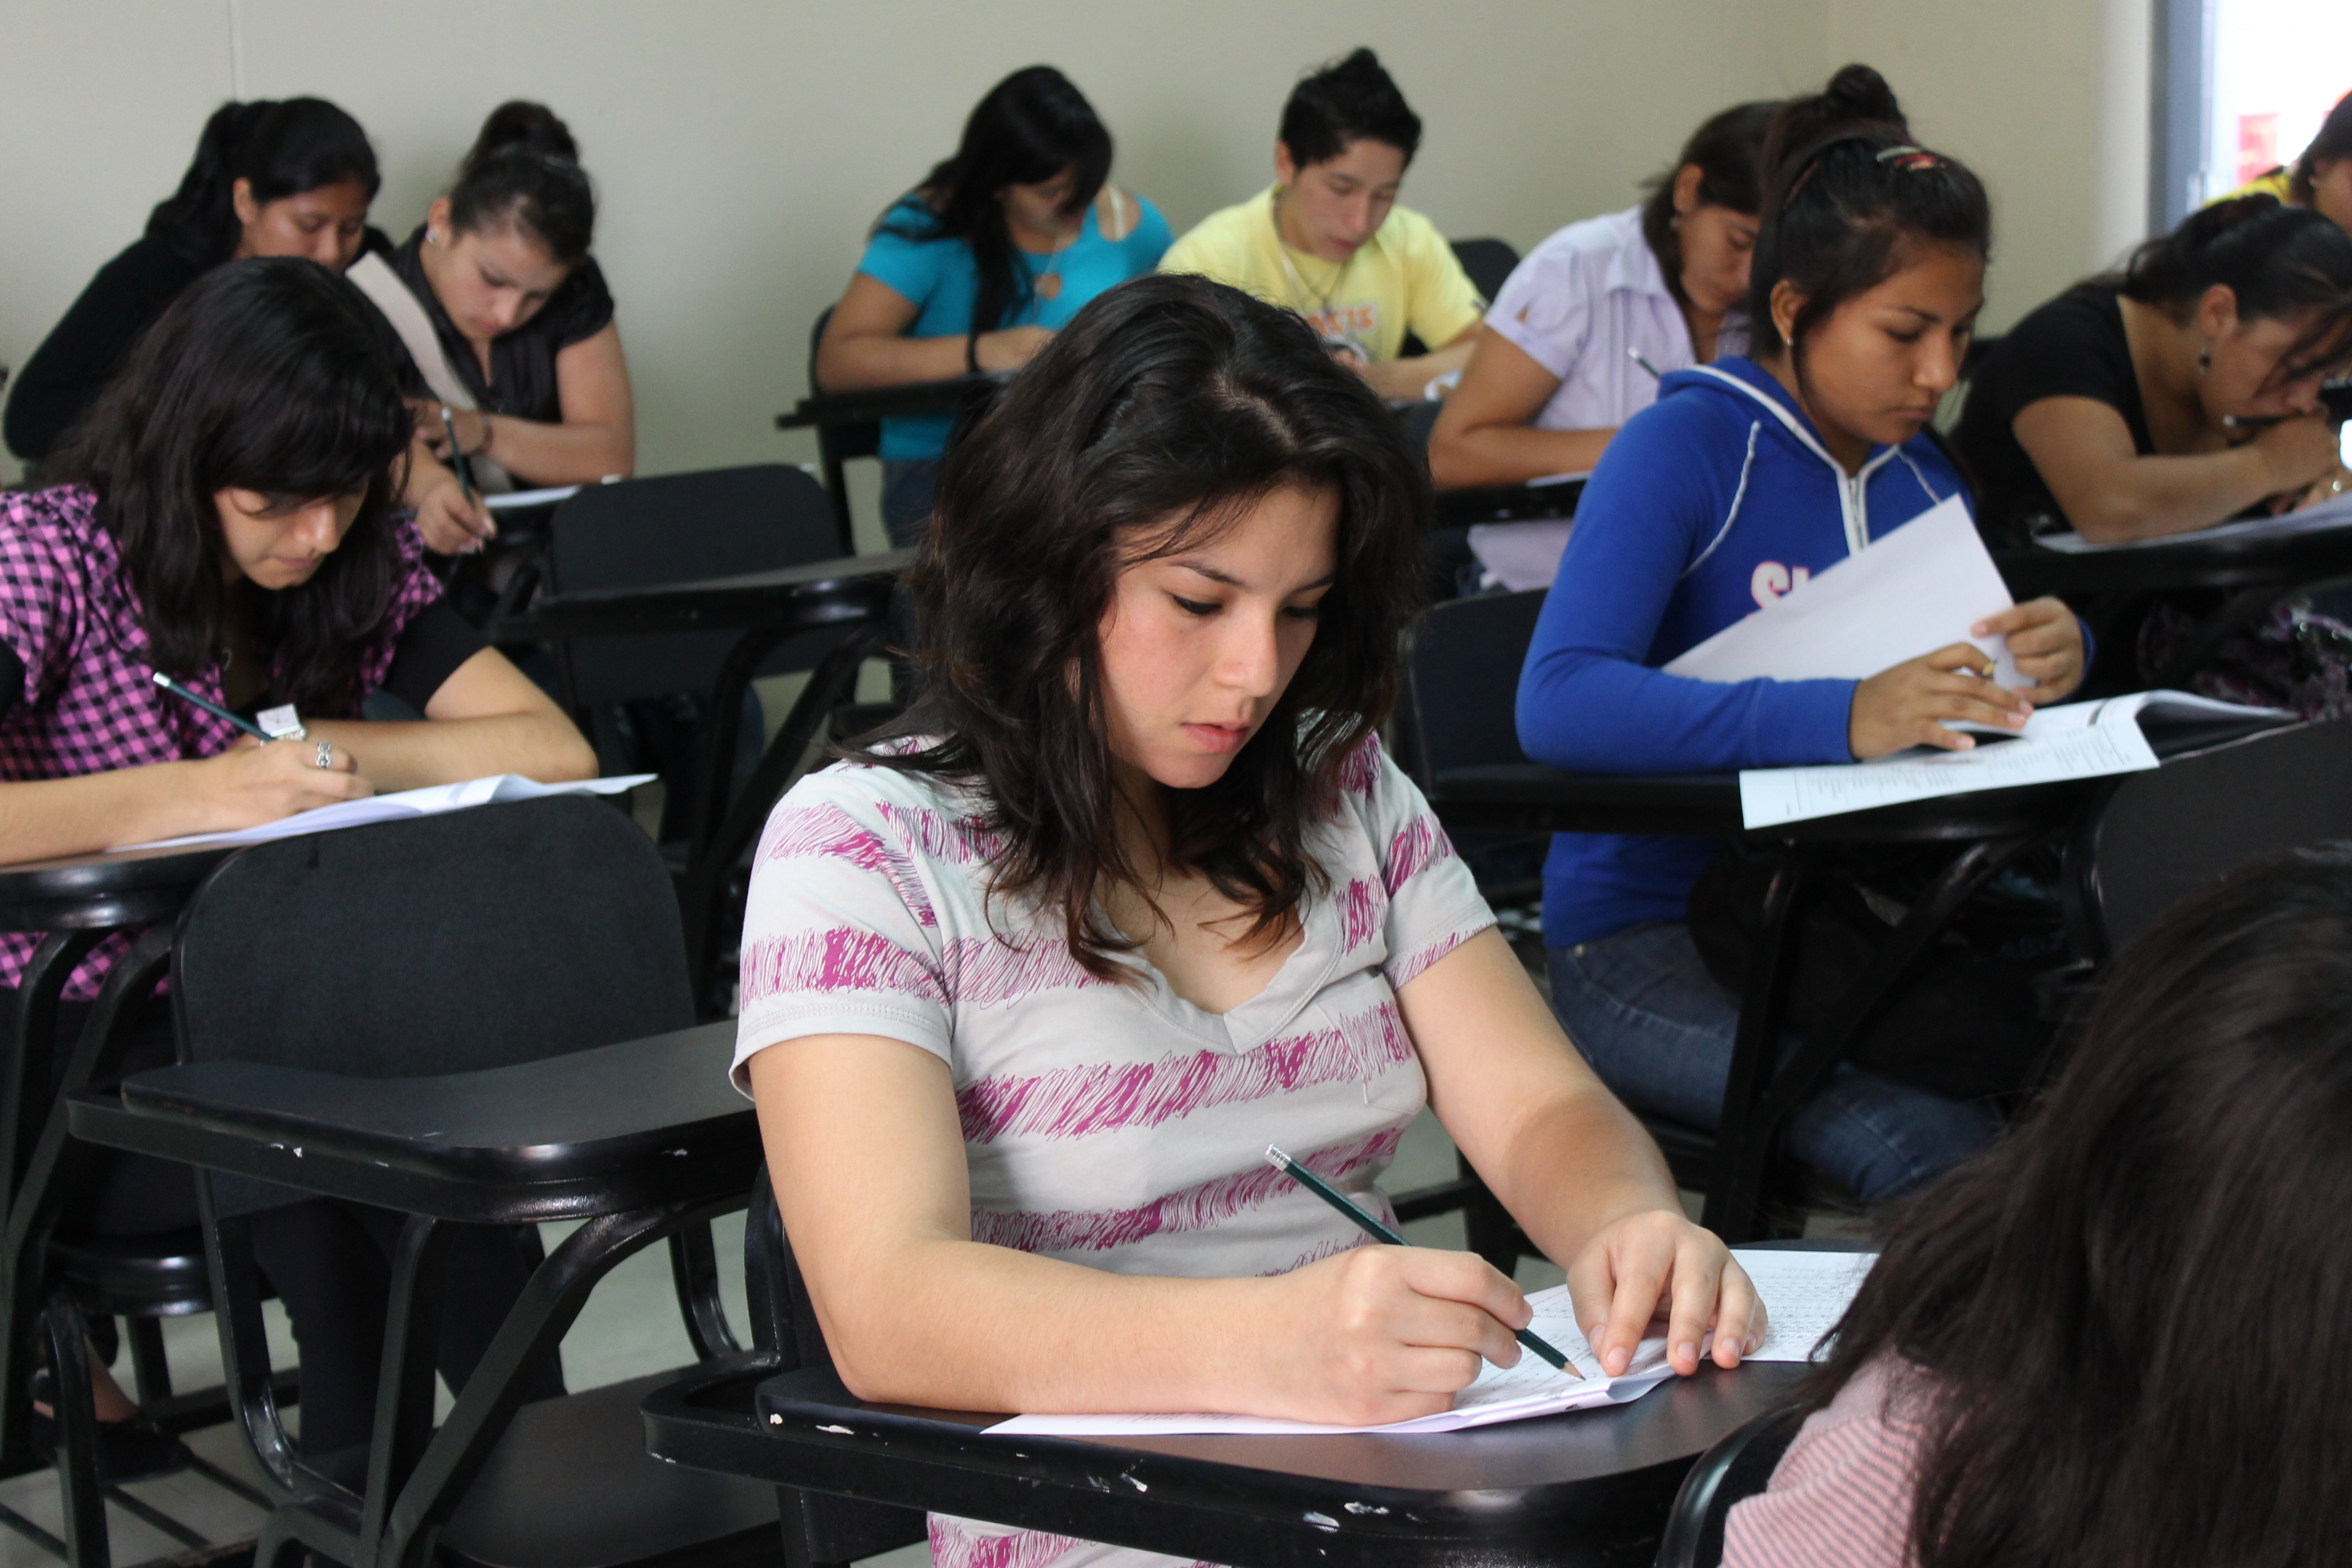 INICIO DE CLASES PROGRAMA FORMACION PARA ADULTOS